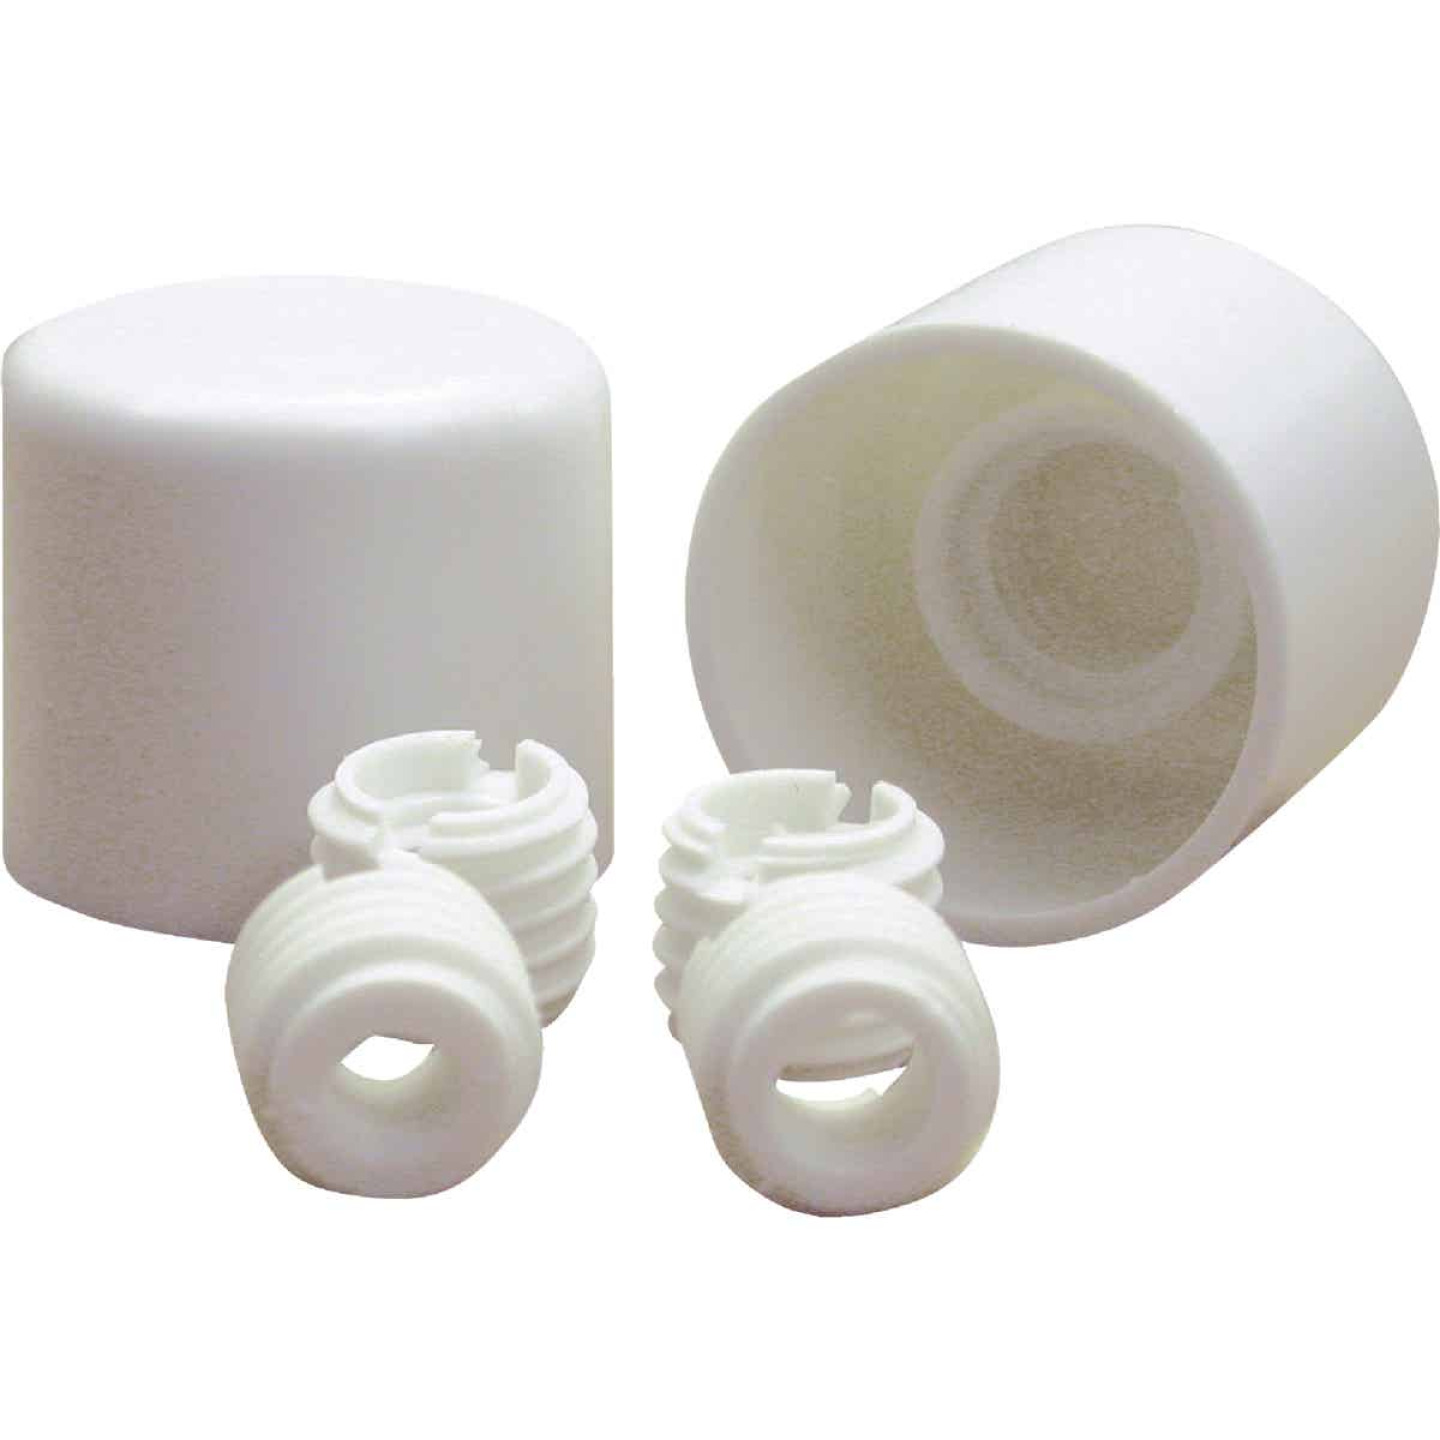 Danco Twister White Plastic Screw-On Toilet Bolt Caps (2-Ct.) Image 1